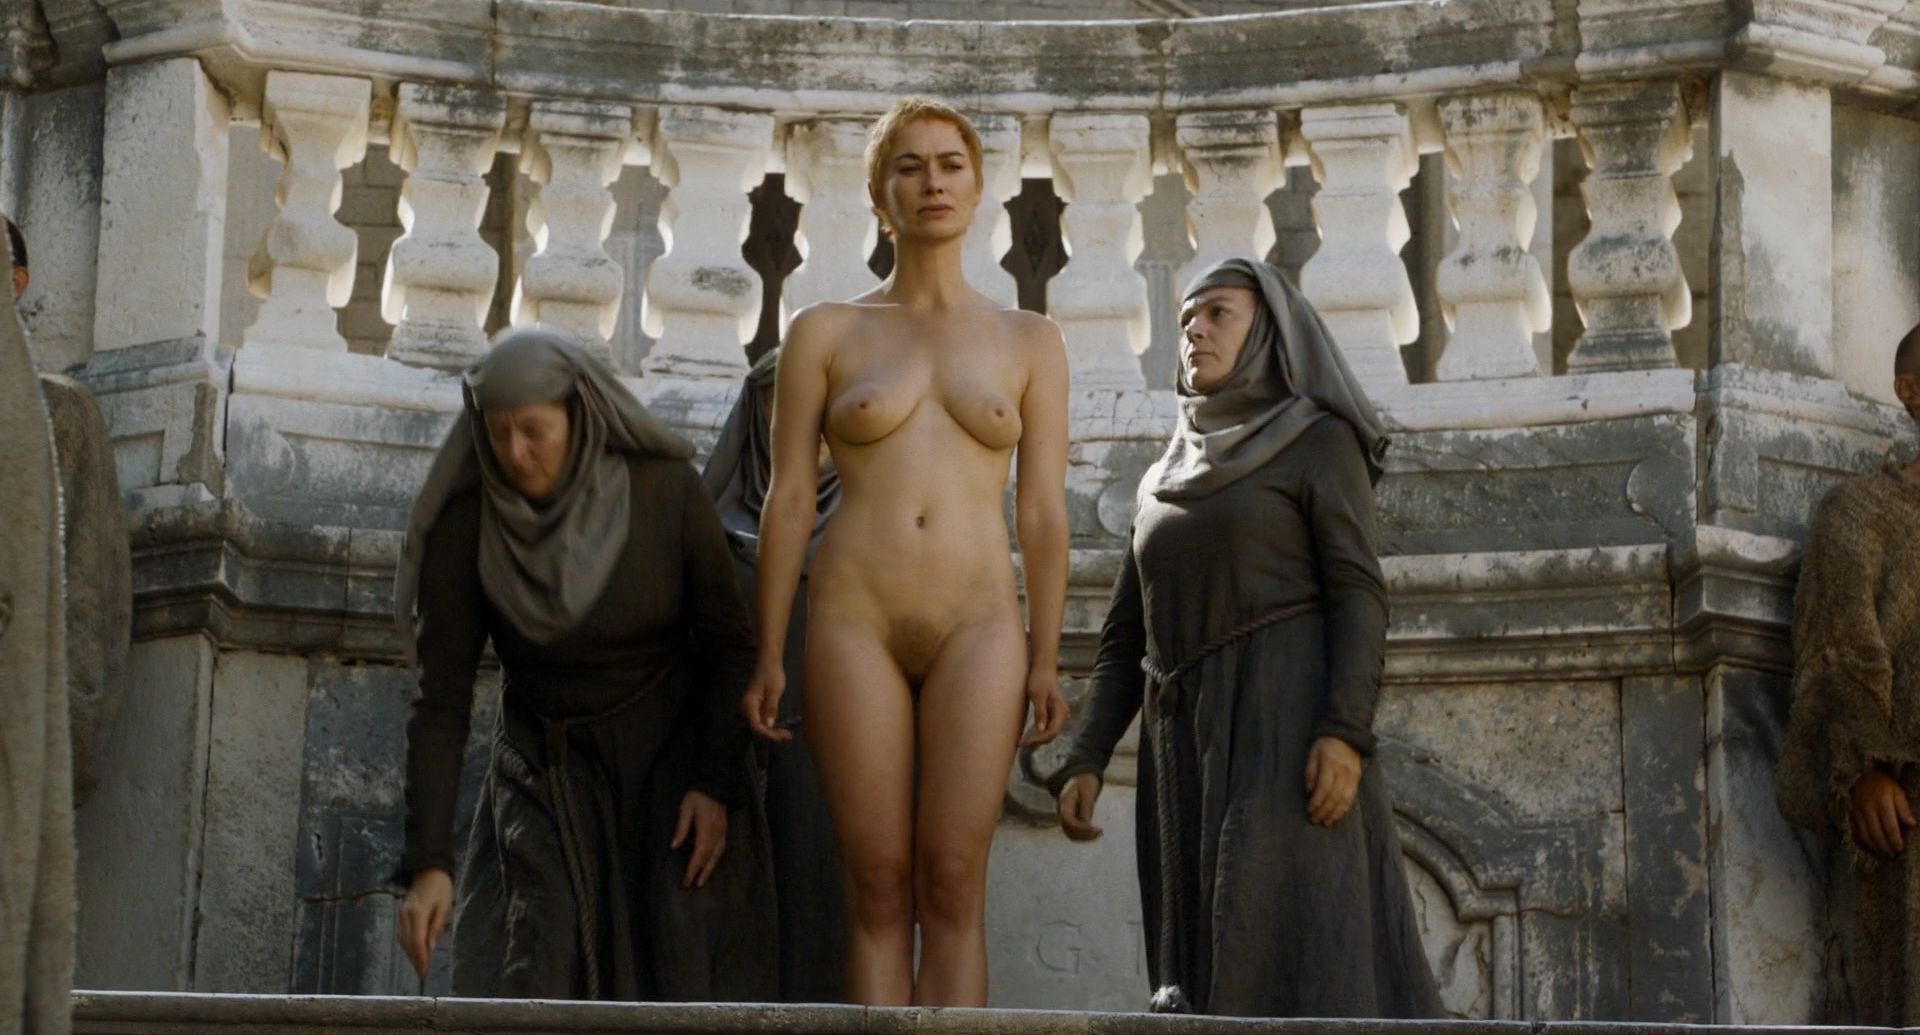 lena headey naked photos could